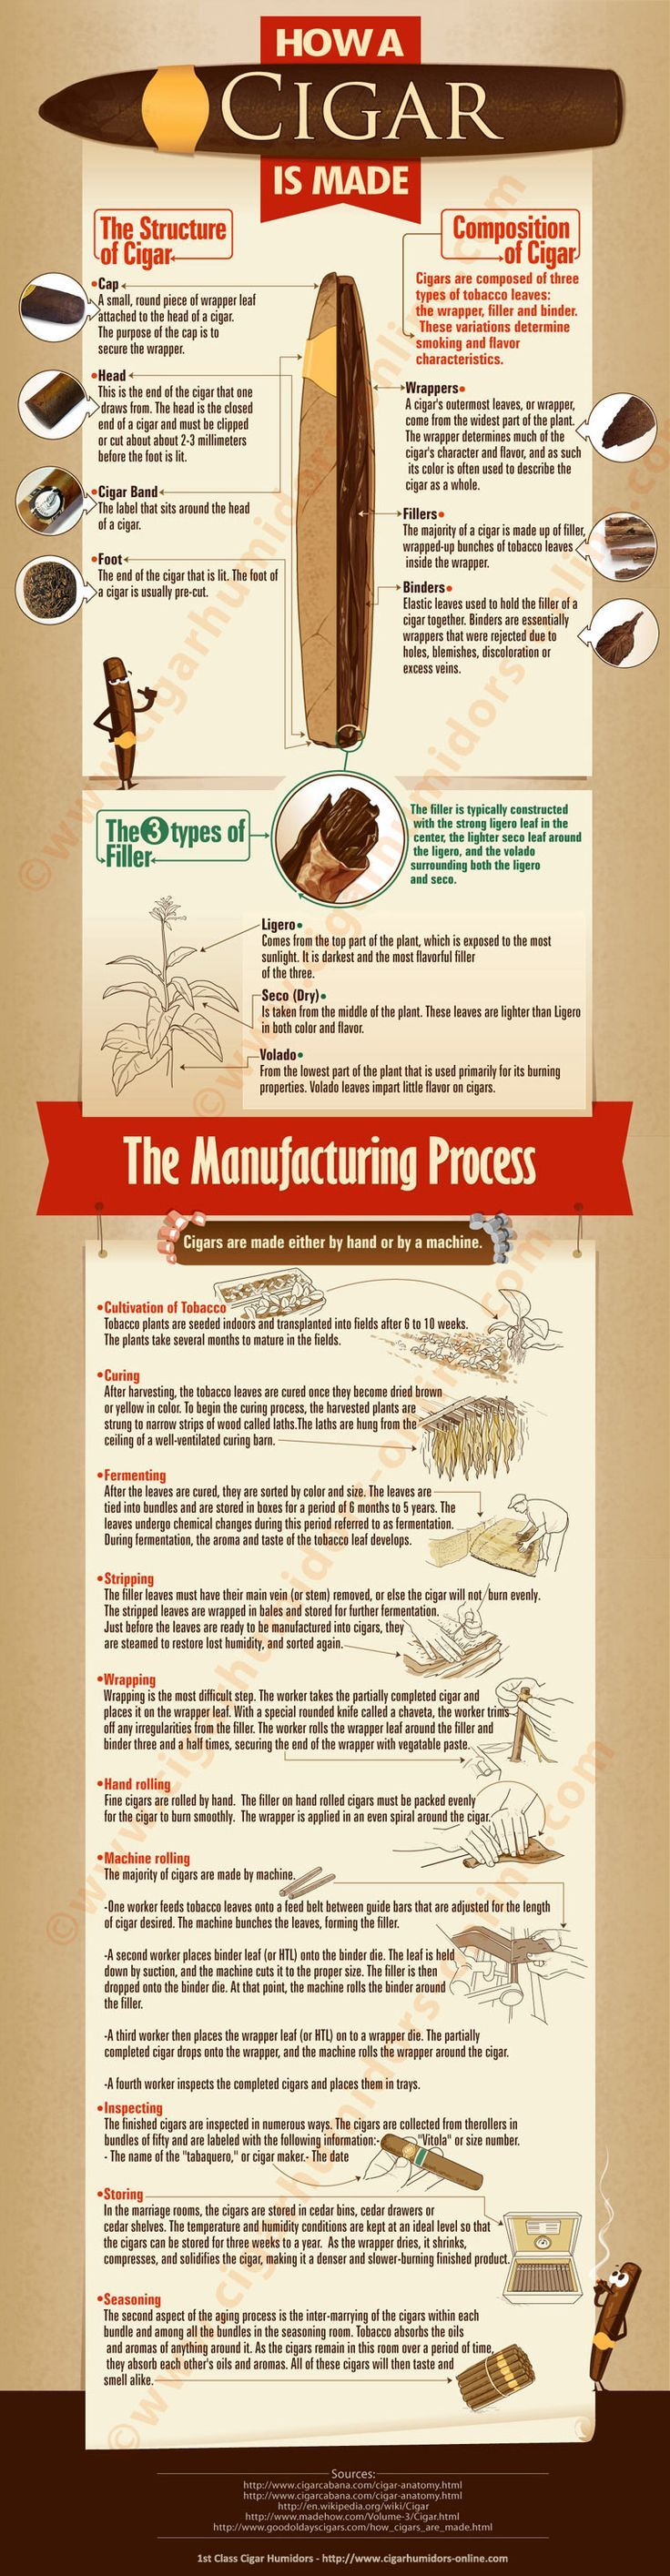 cigar infographics   How is a Cigar Made Infographic how-to-make-a-cigar-infographic ...